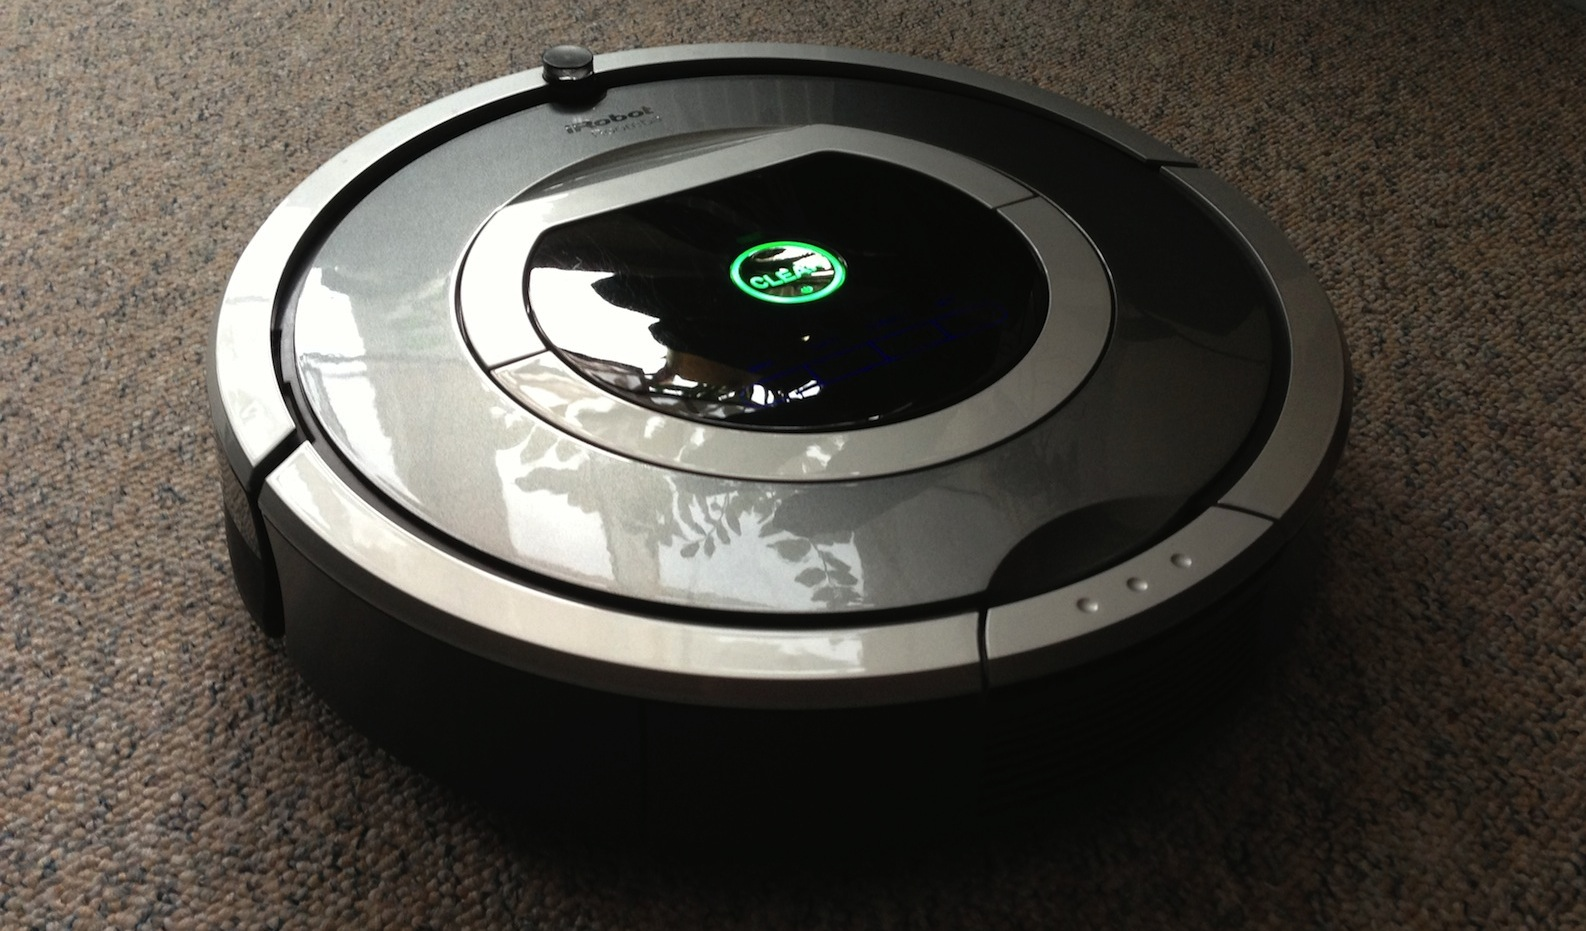 erfahrungsbericht irobot roomba 780 staubsaug roboter. Black Bedroom Furniture Sets. Home Design Ideas